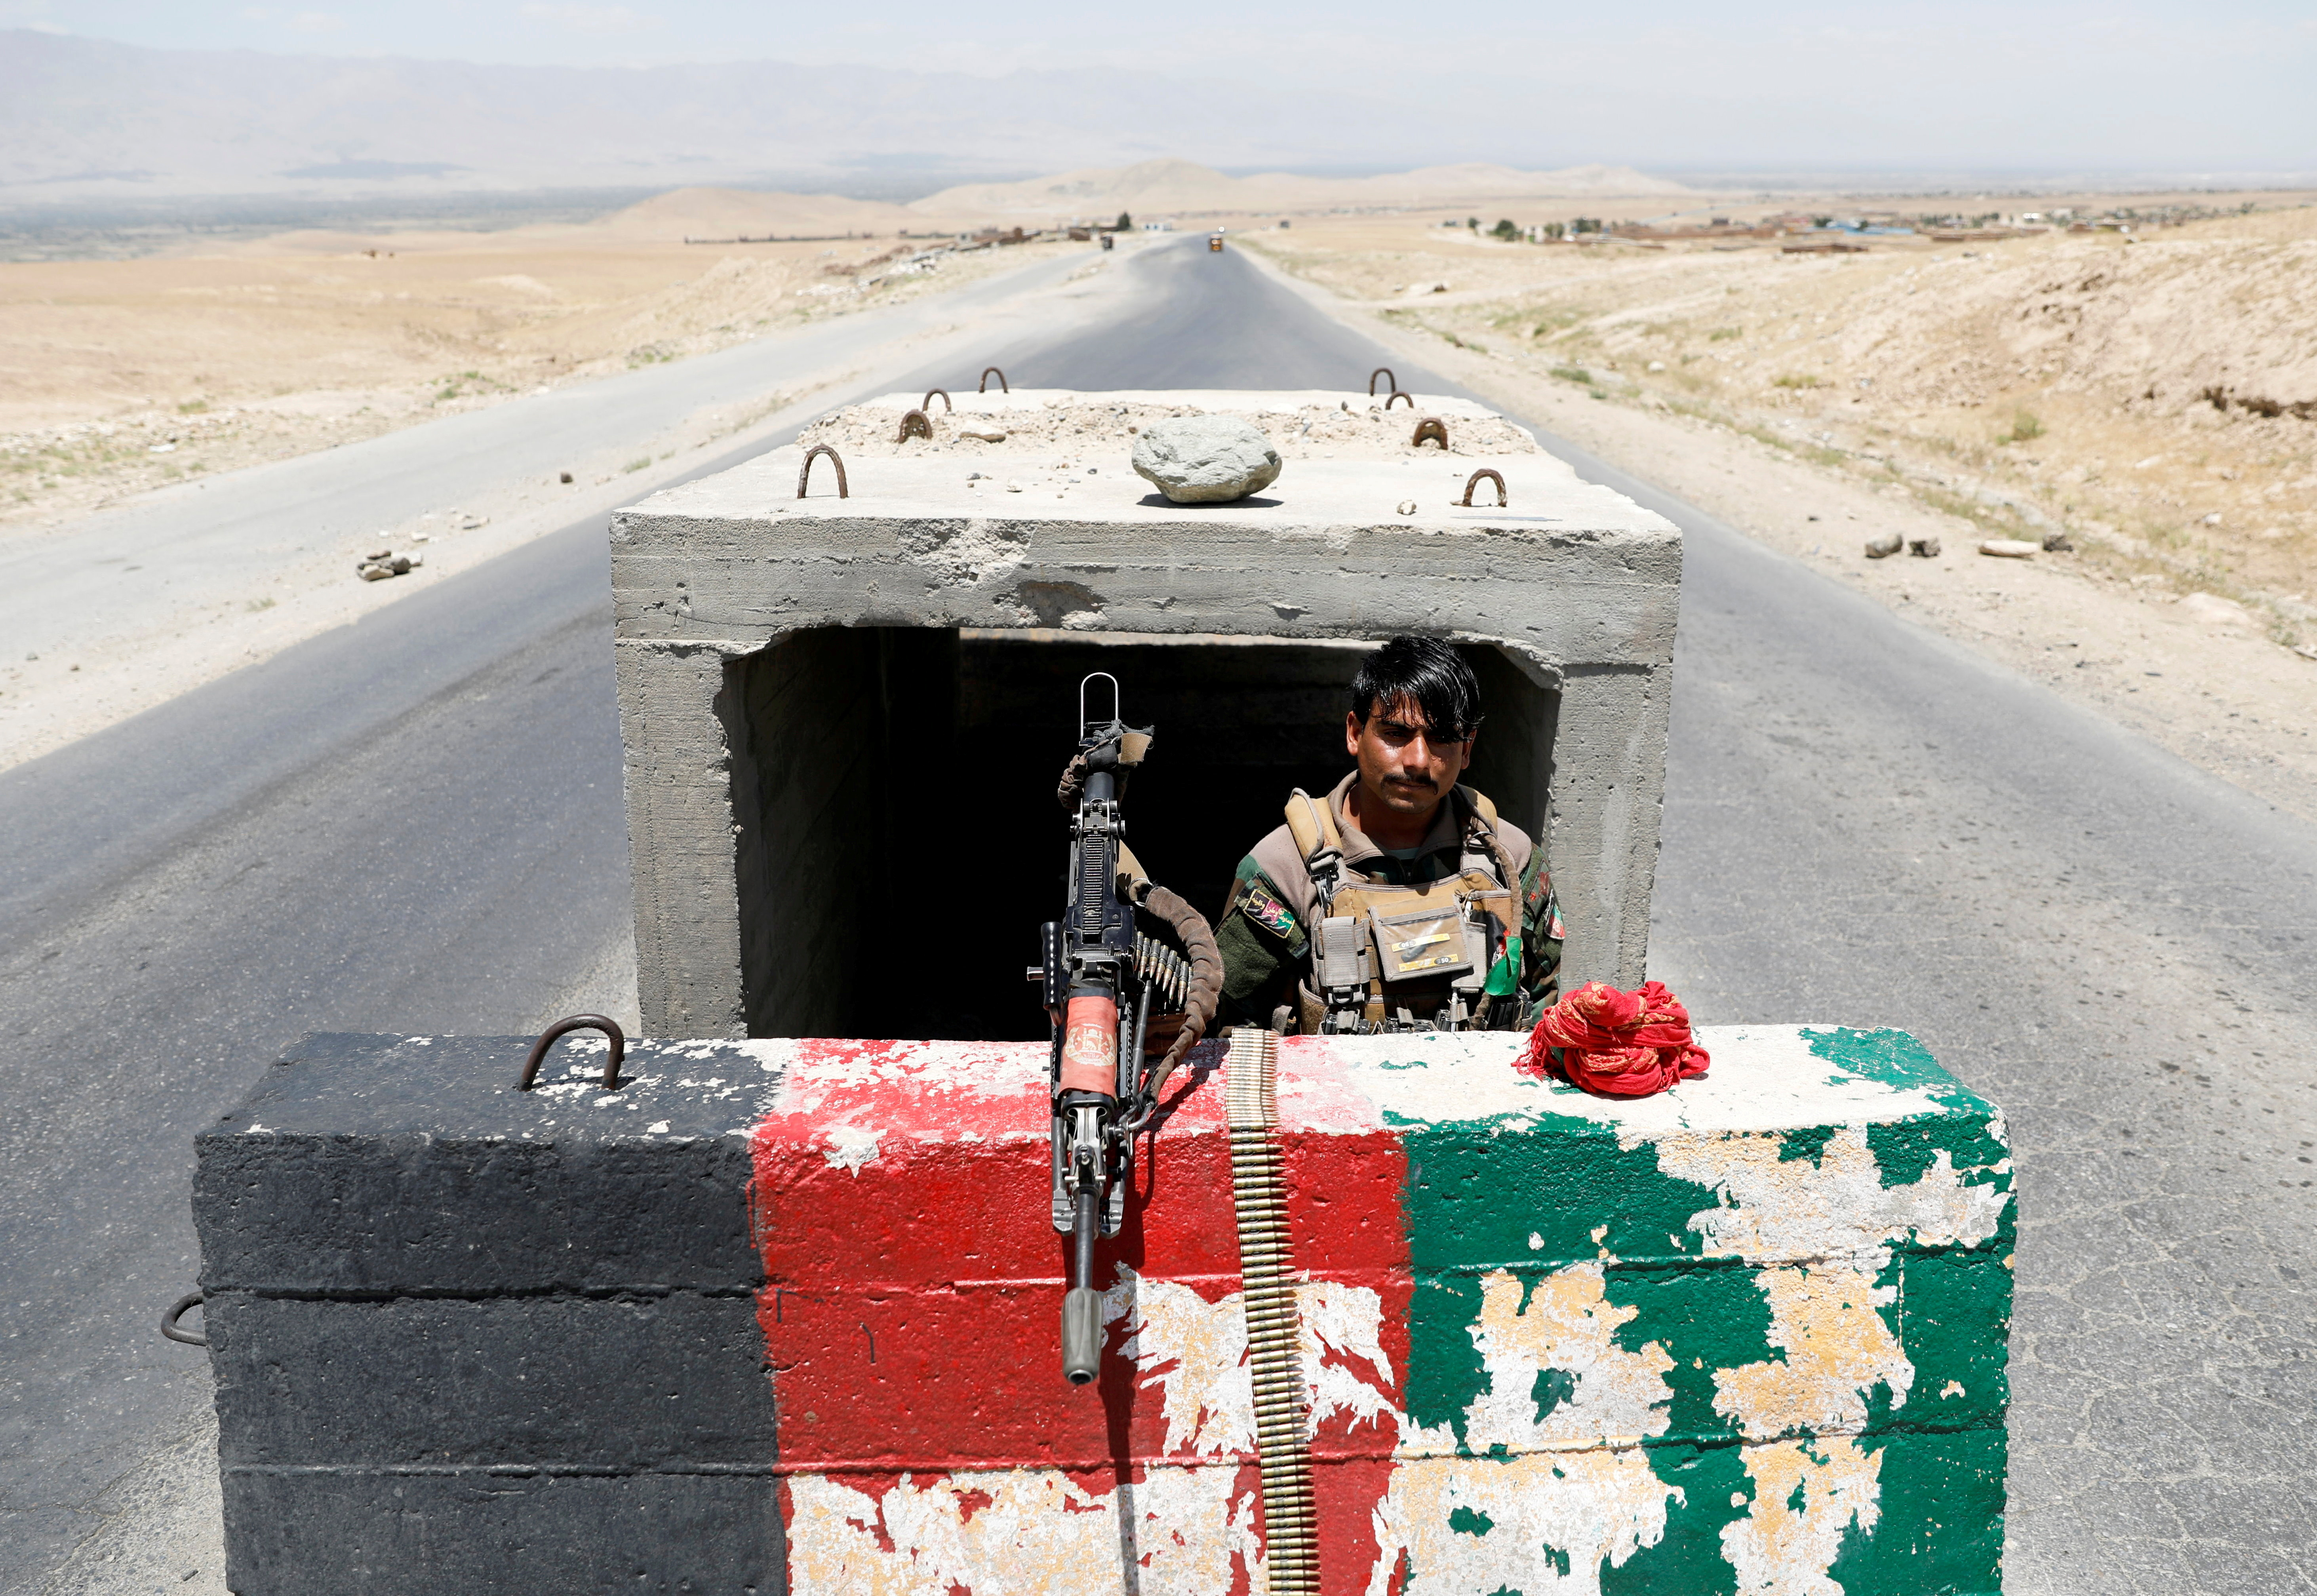 An Afghan National Army soldier stands guard at a checkpoint near Bagram Air Base on the day the last American troops vacated it, in Parwan province, Afghanistan, July 2, 2021. REUTERS/Mohammad Ismail/File Photo